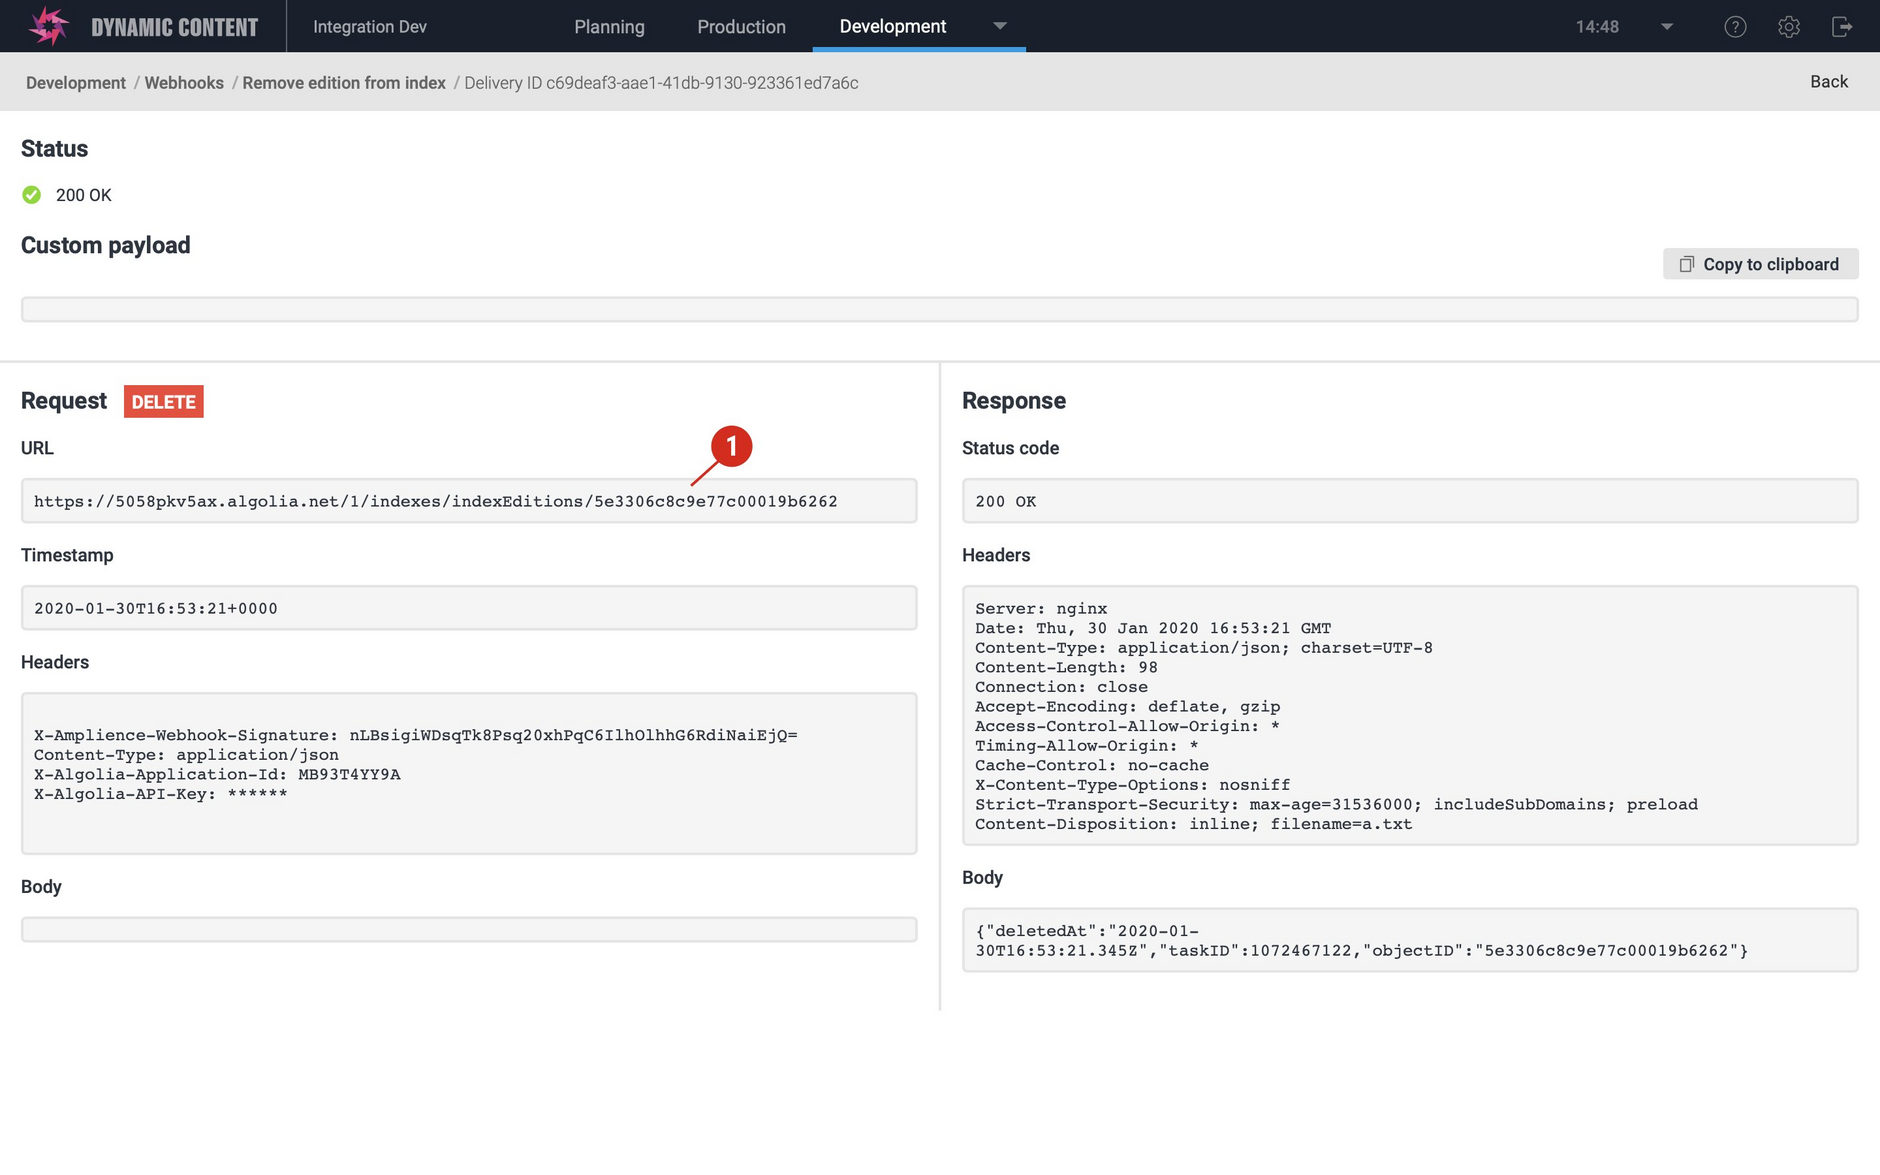 Webhook details for a webhook request using the DELETE method